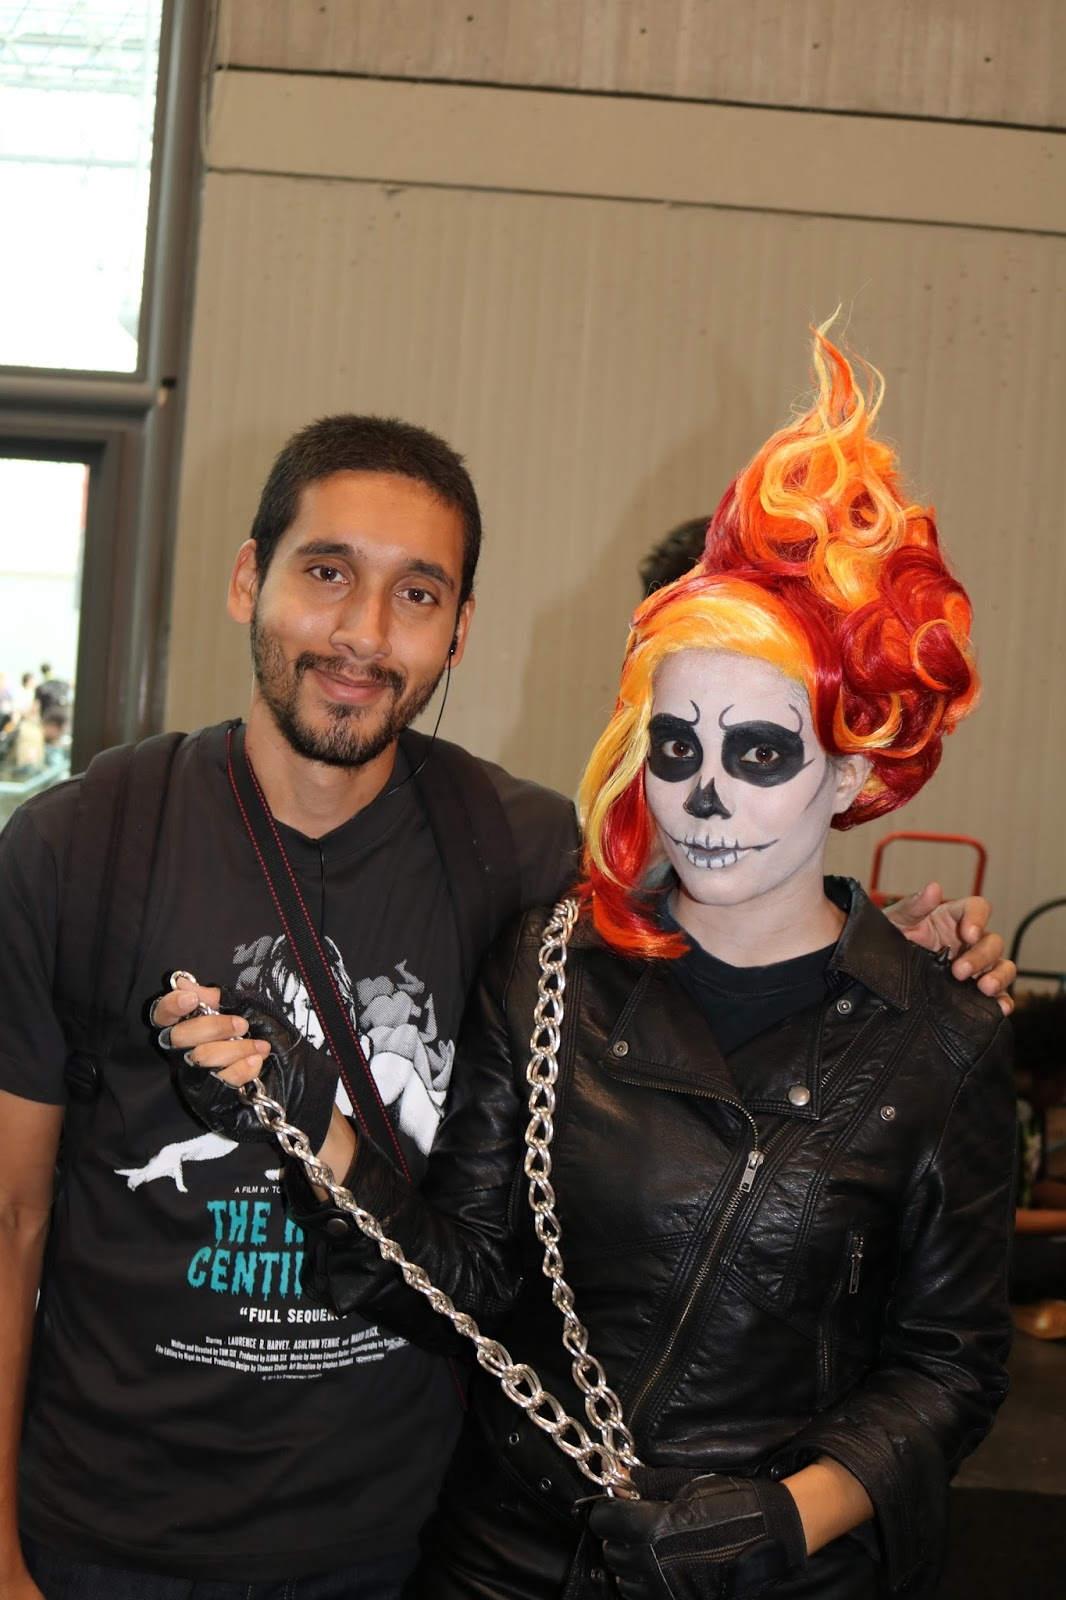 Ghost rider cosplay at new york comic con 2015 nubias nonsense you might be asking yourself how this cosplay costume came to be well let me take you on a little journey it all started out with this young lad in the solutioingenieria Gallery